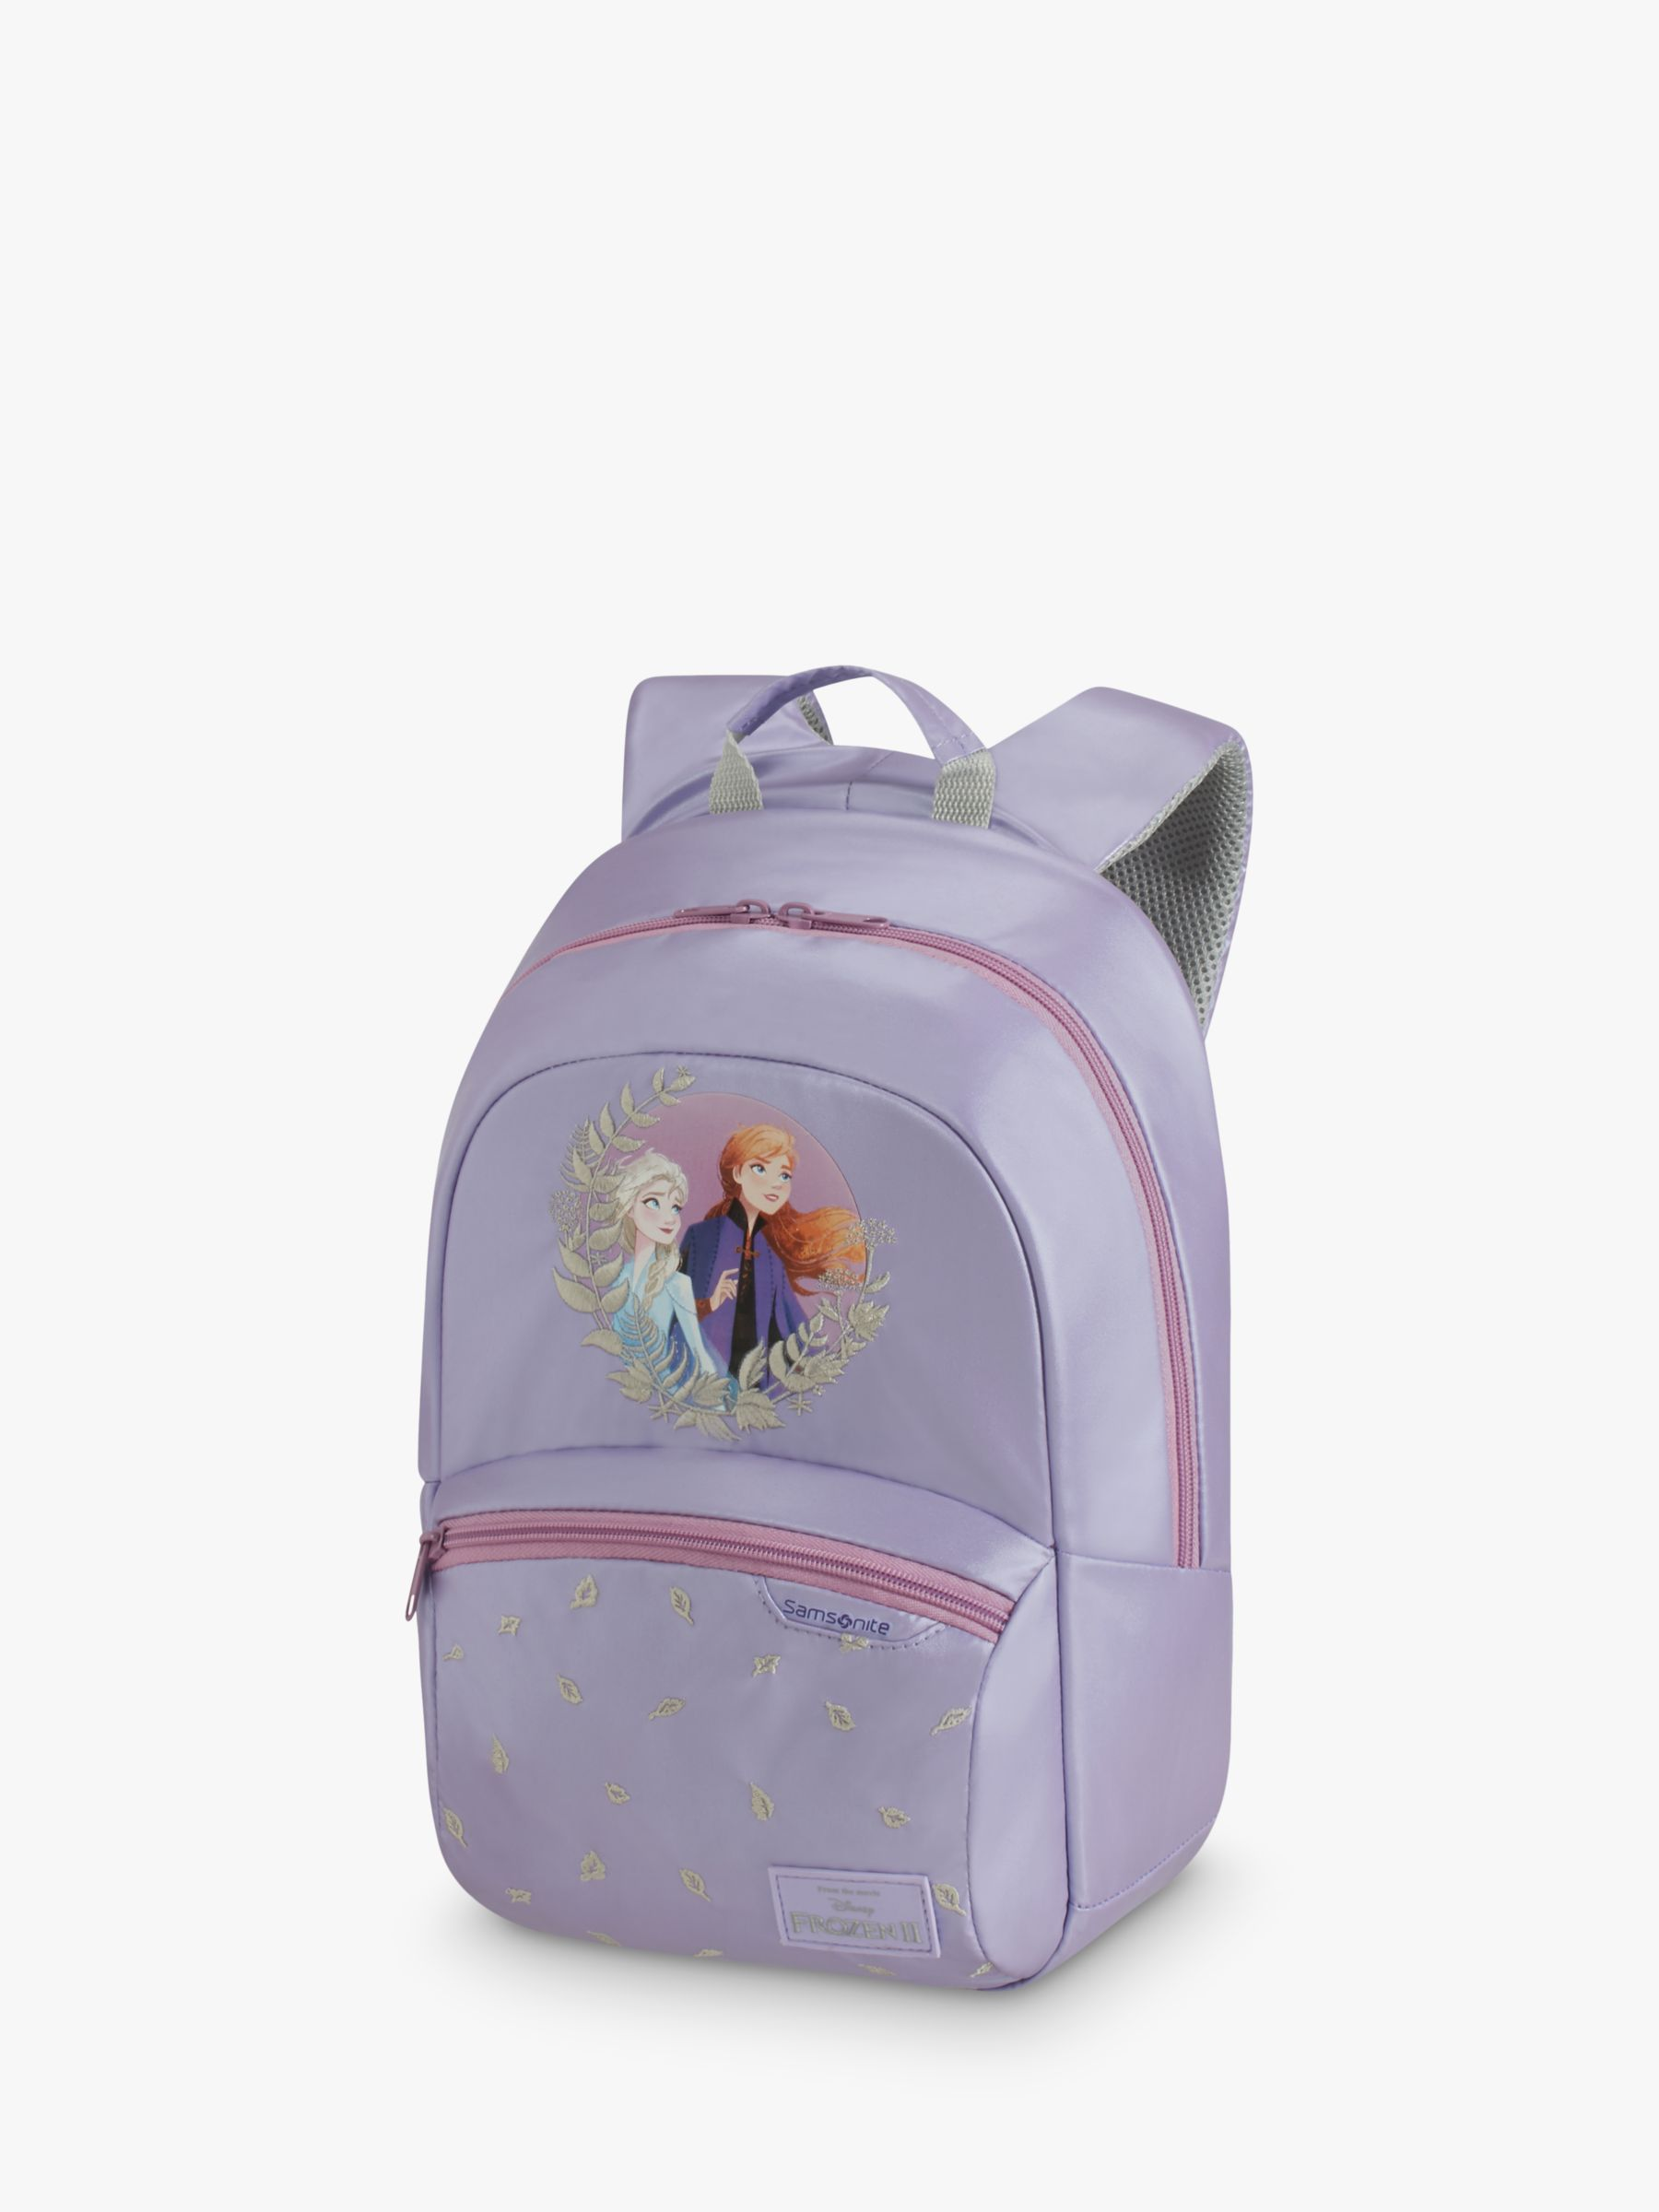 Samsonite Samsonite Disney Frozen II Small Backpack